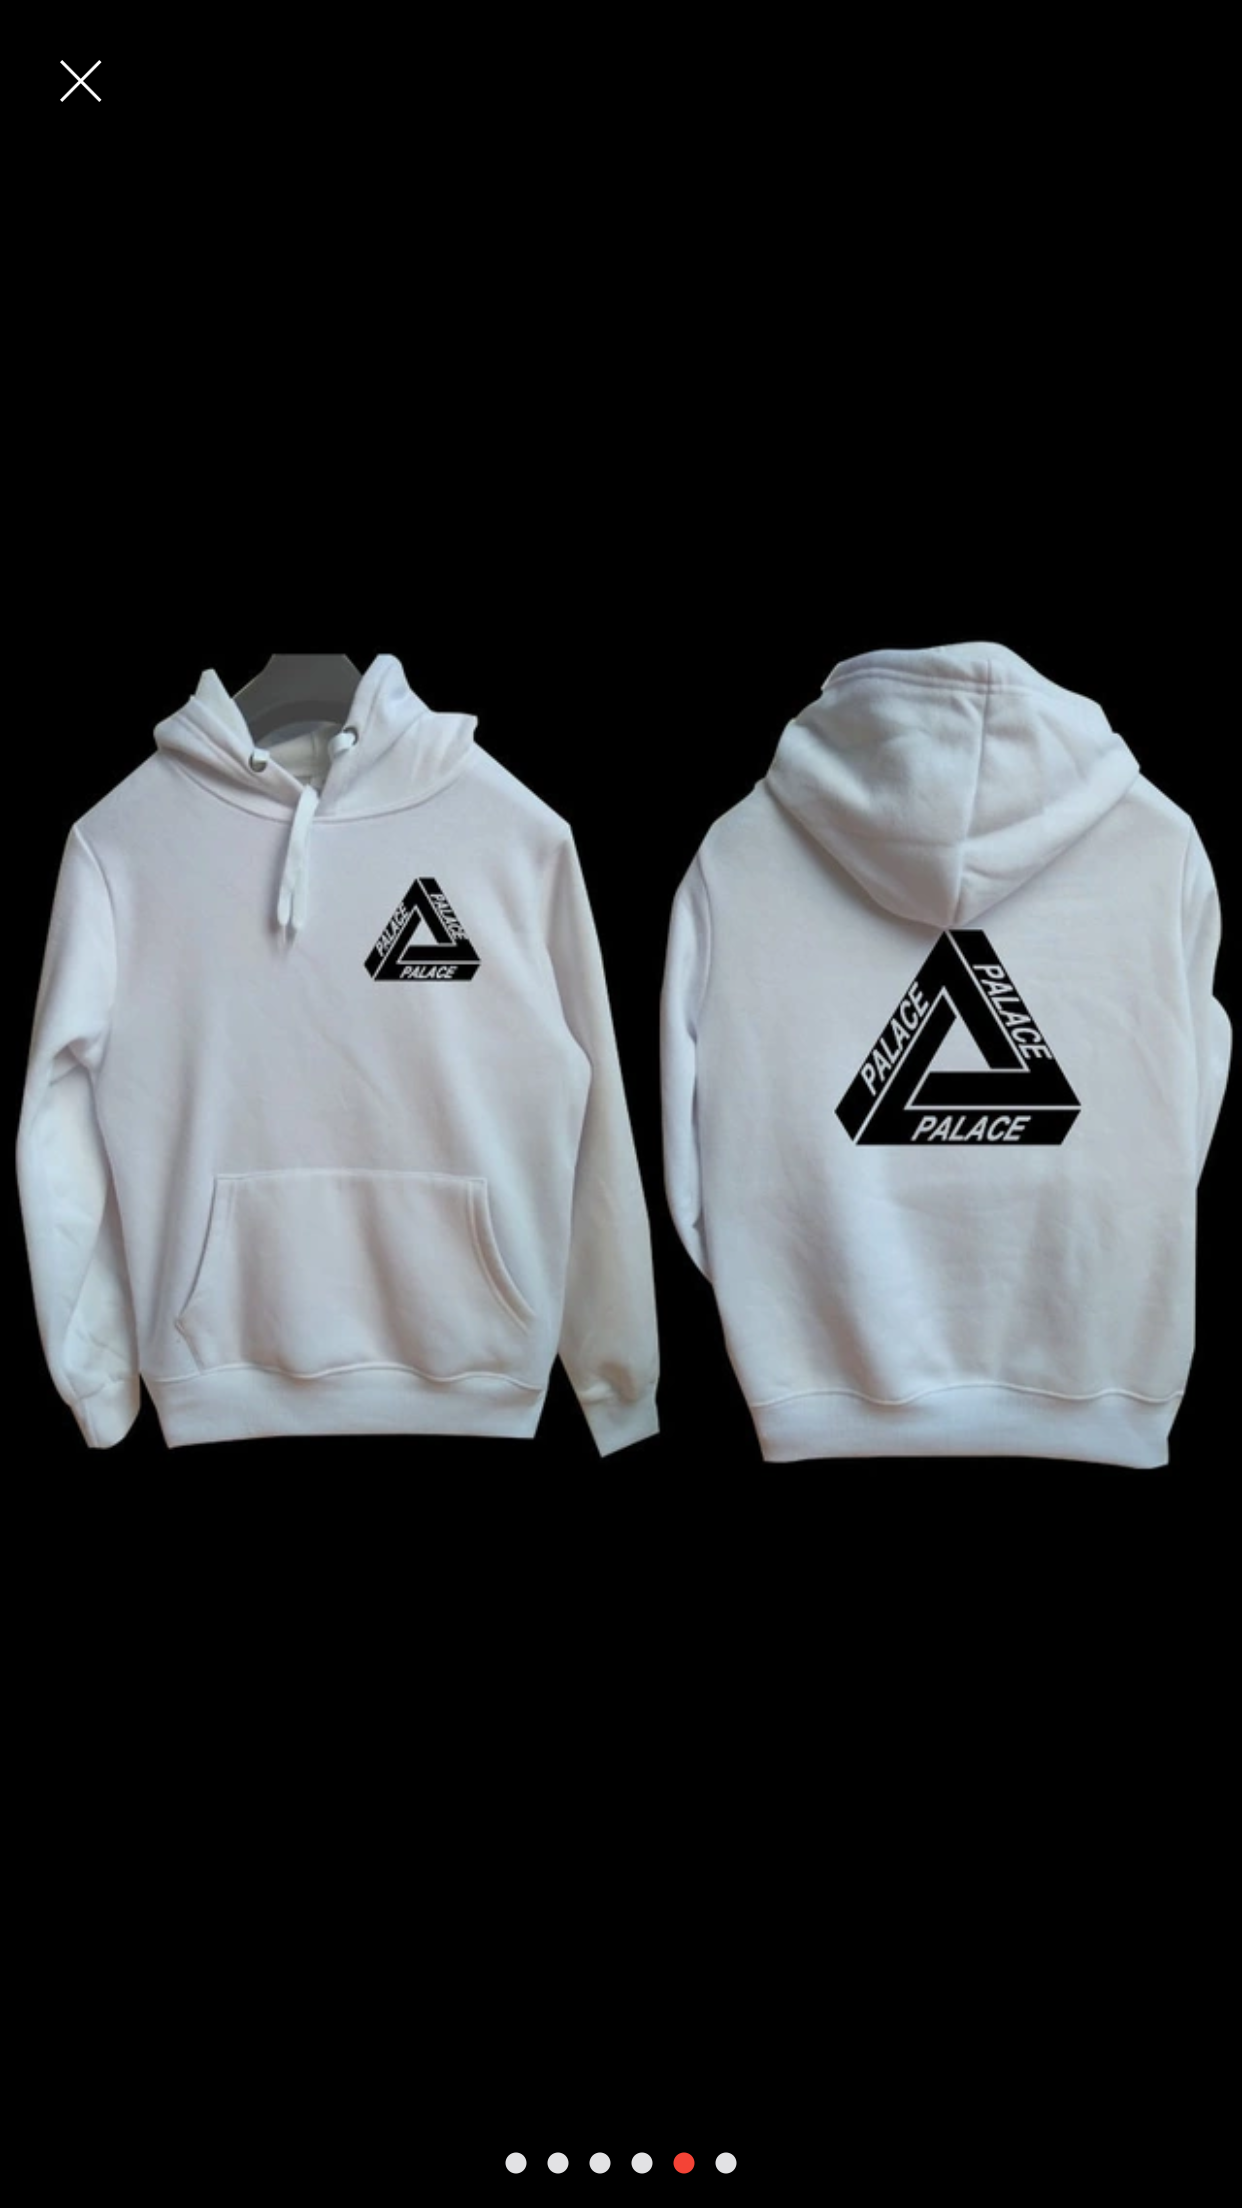 adidas x palace white sweatshirt, Womens & Mens (unisex